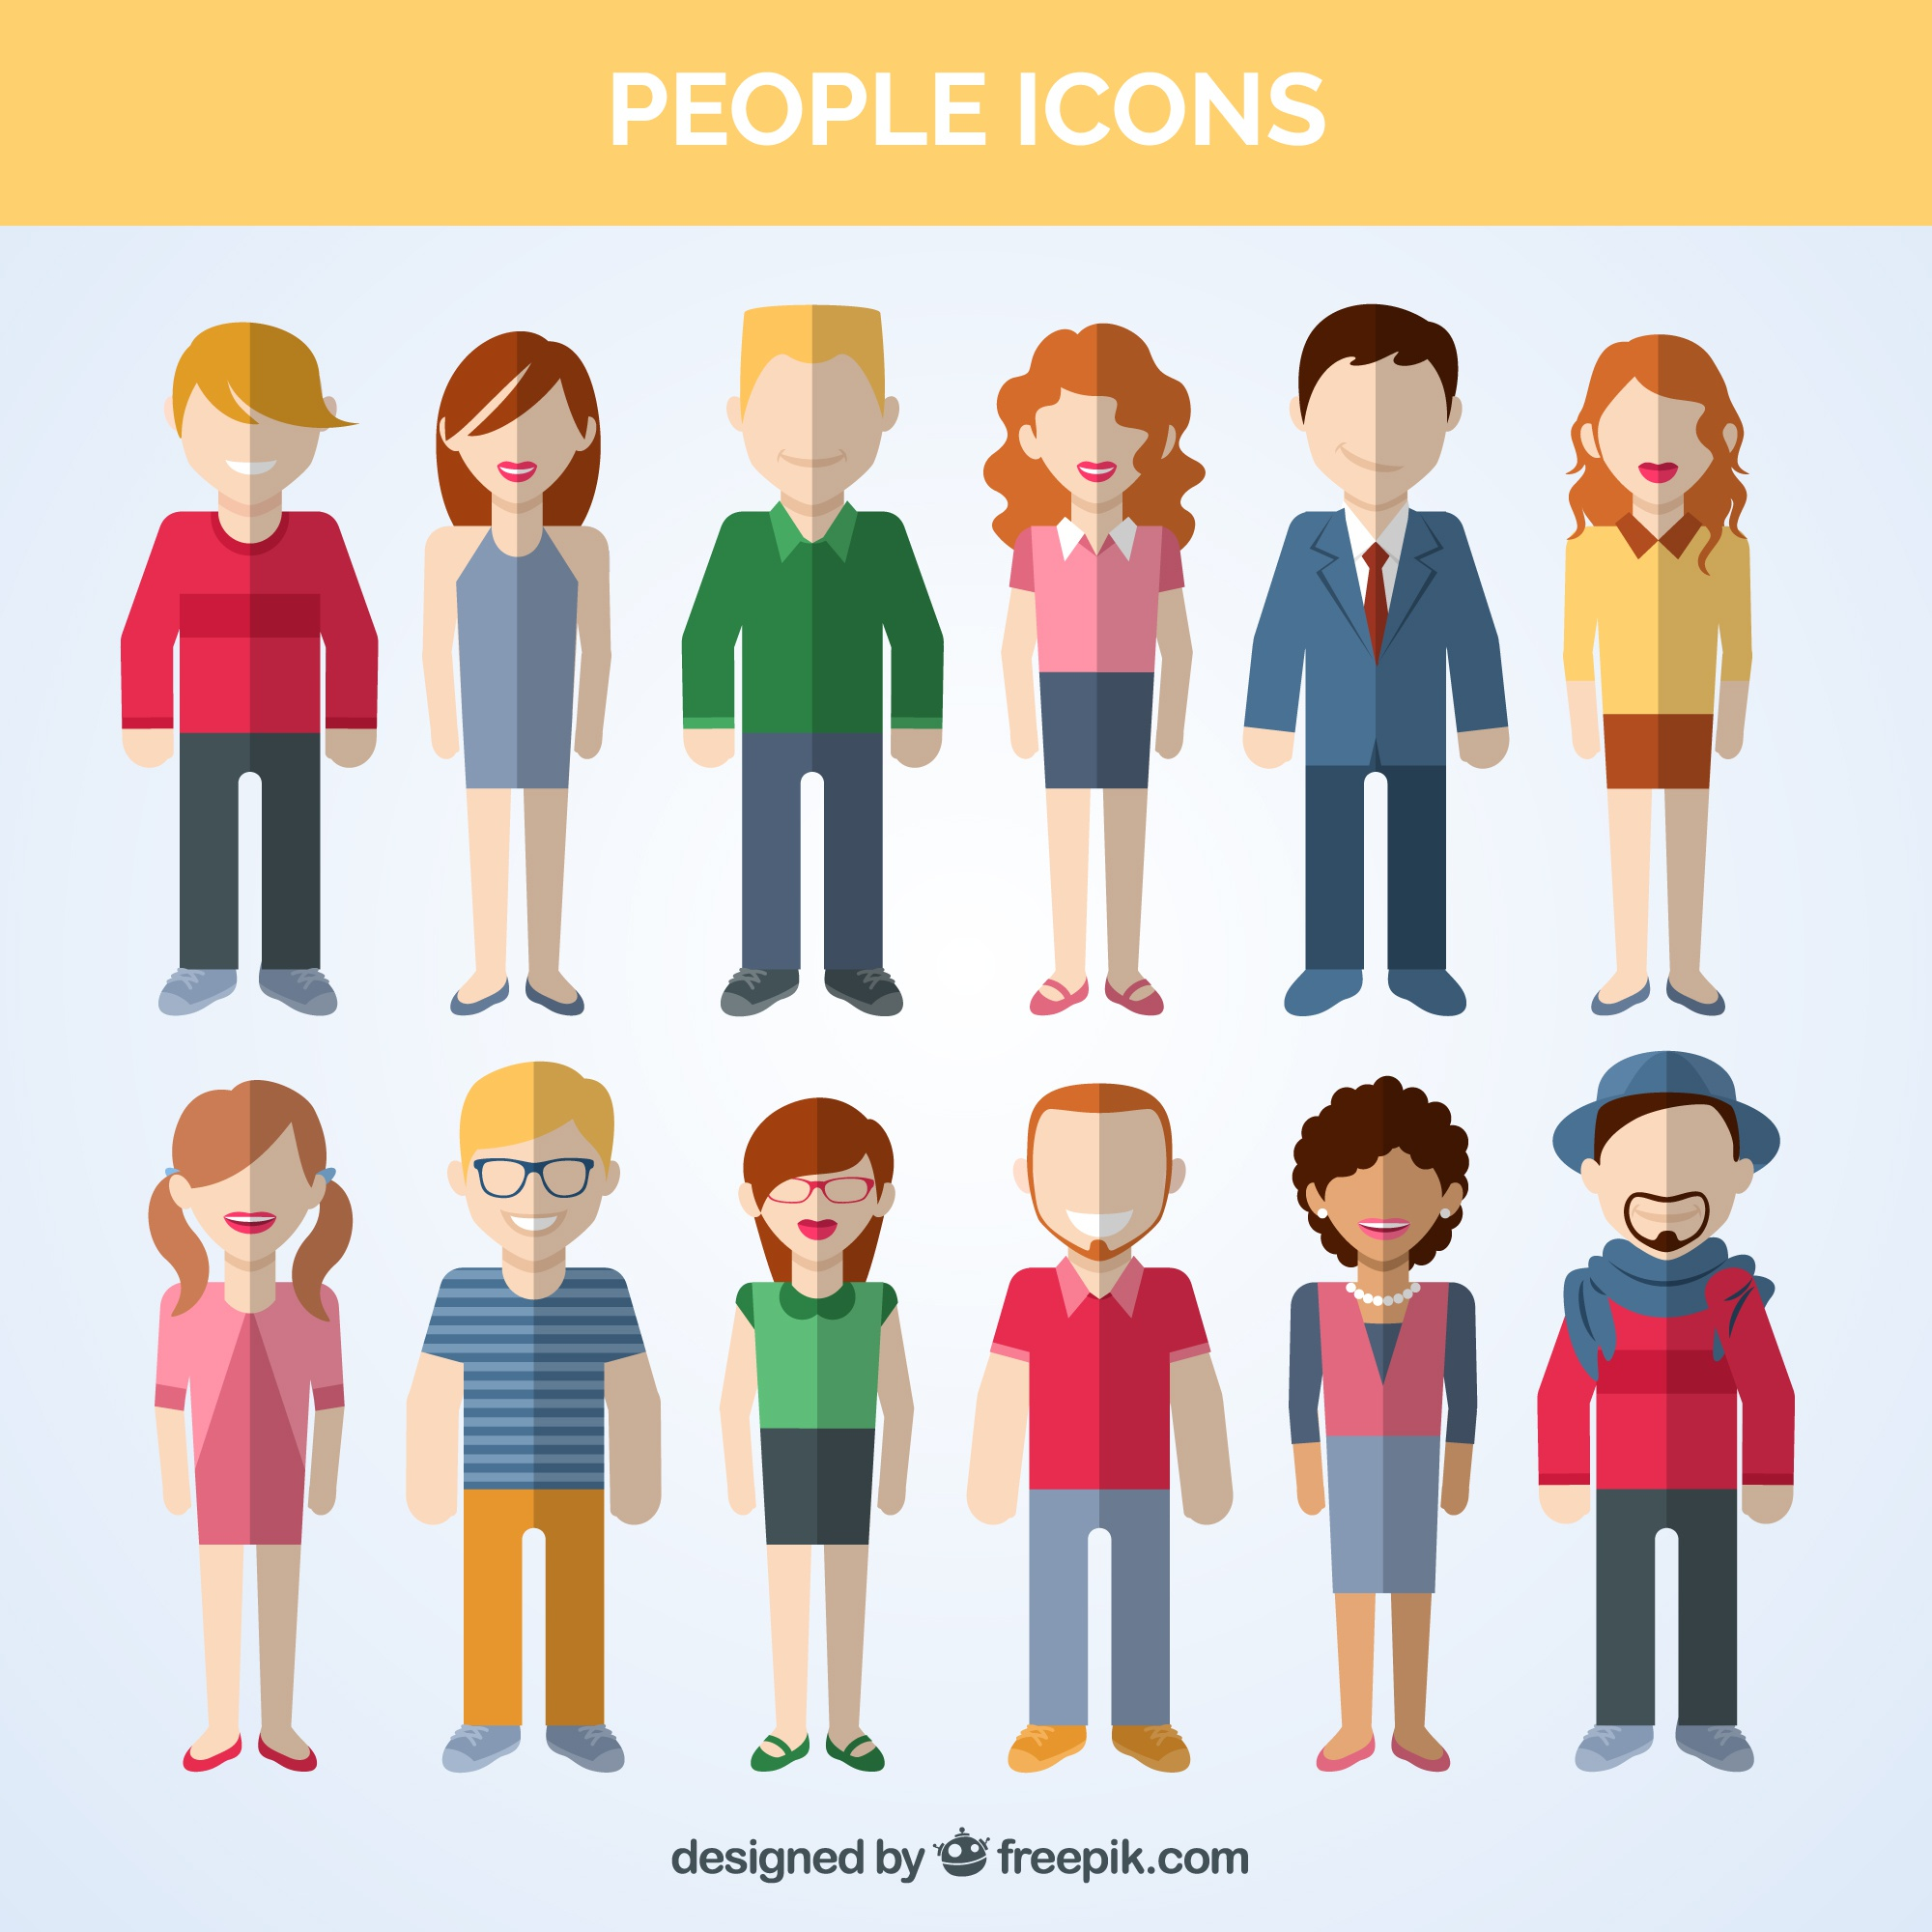 Variety of people icons